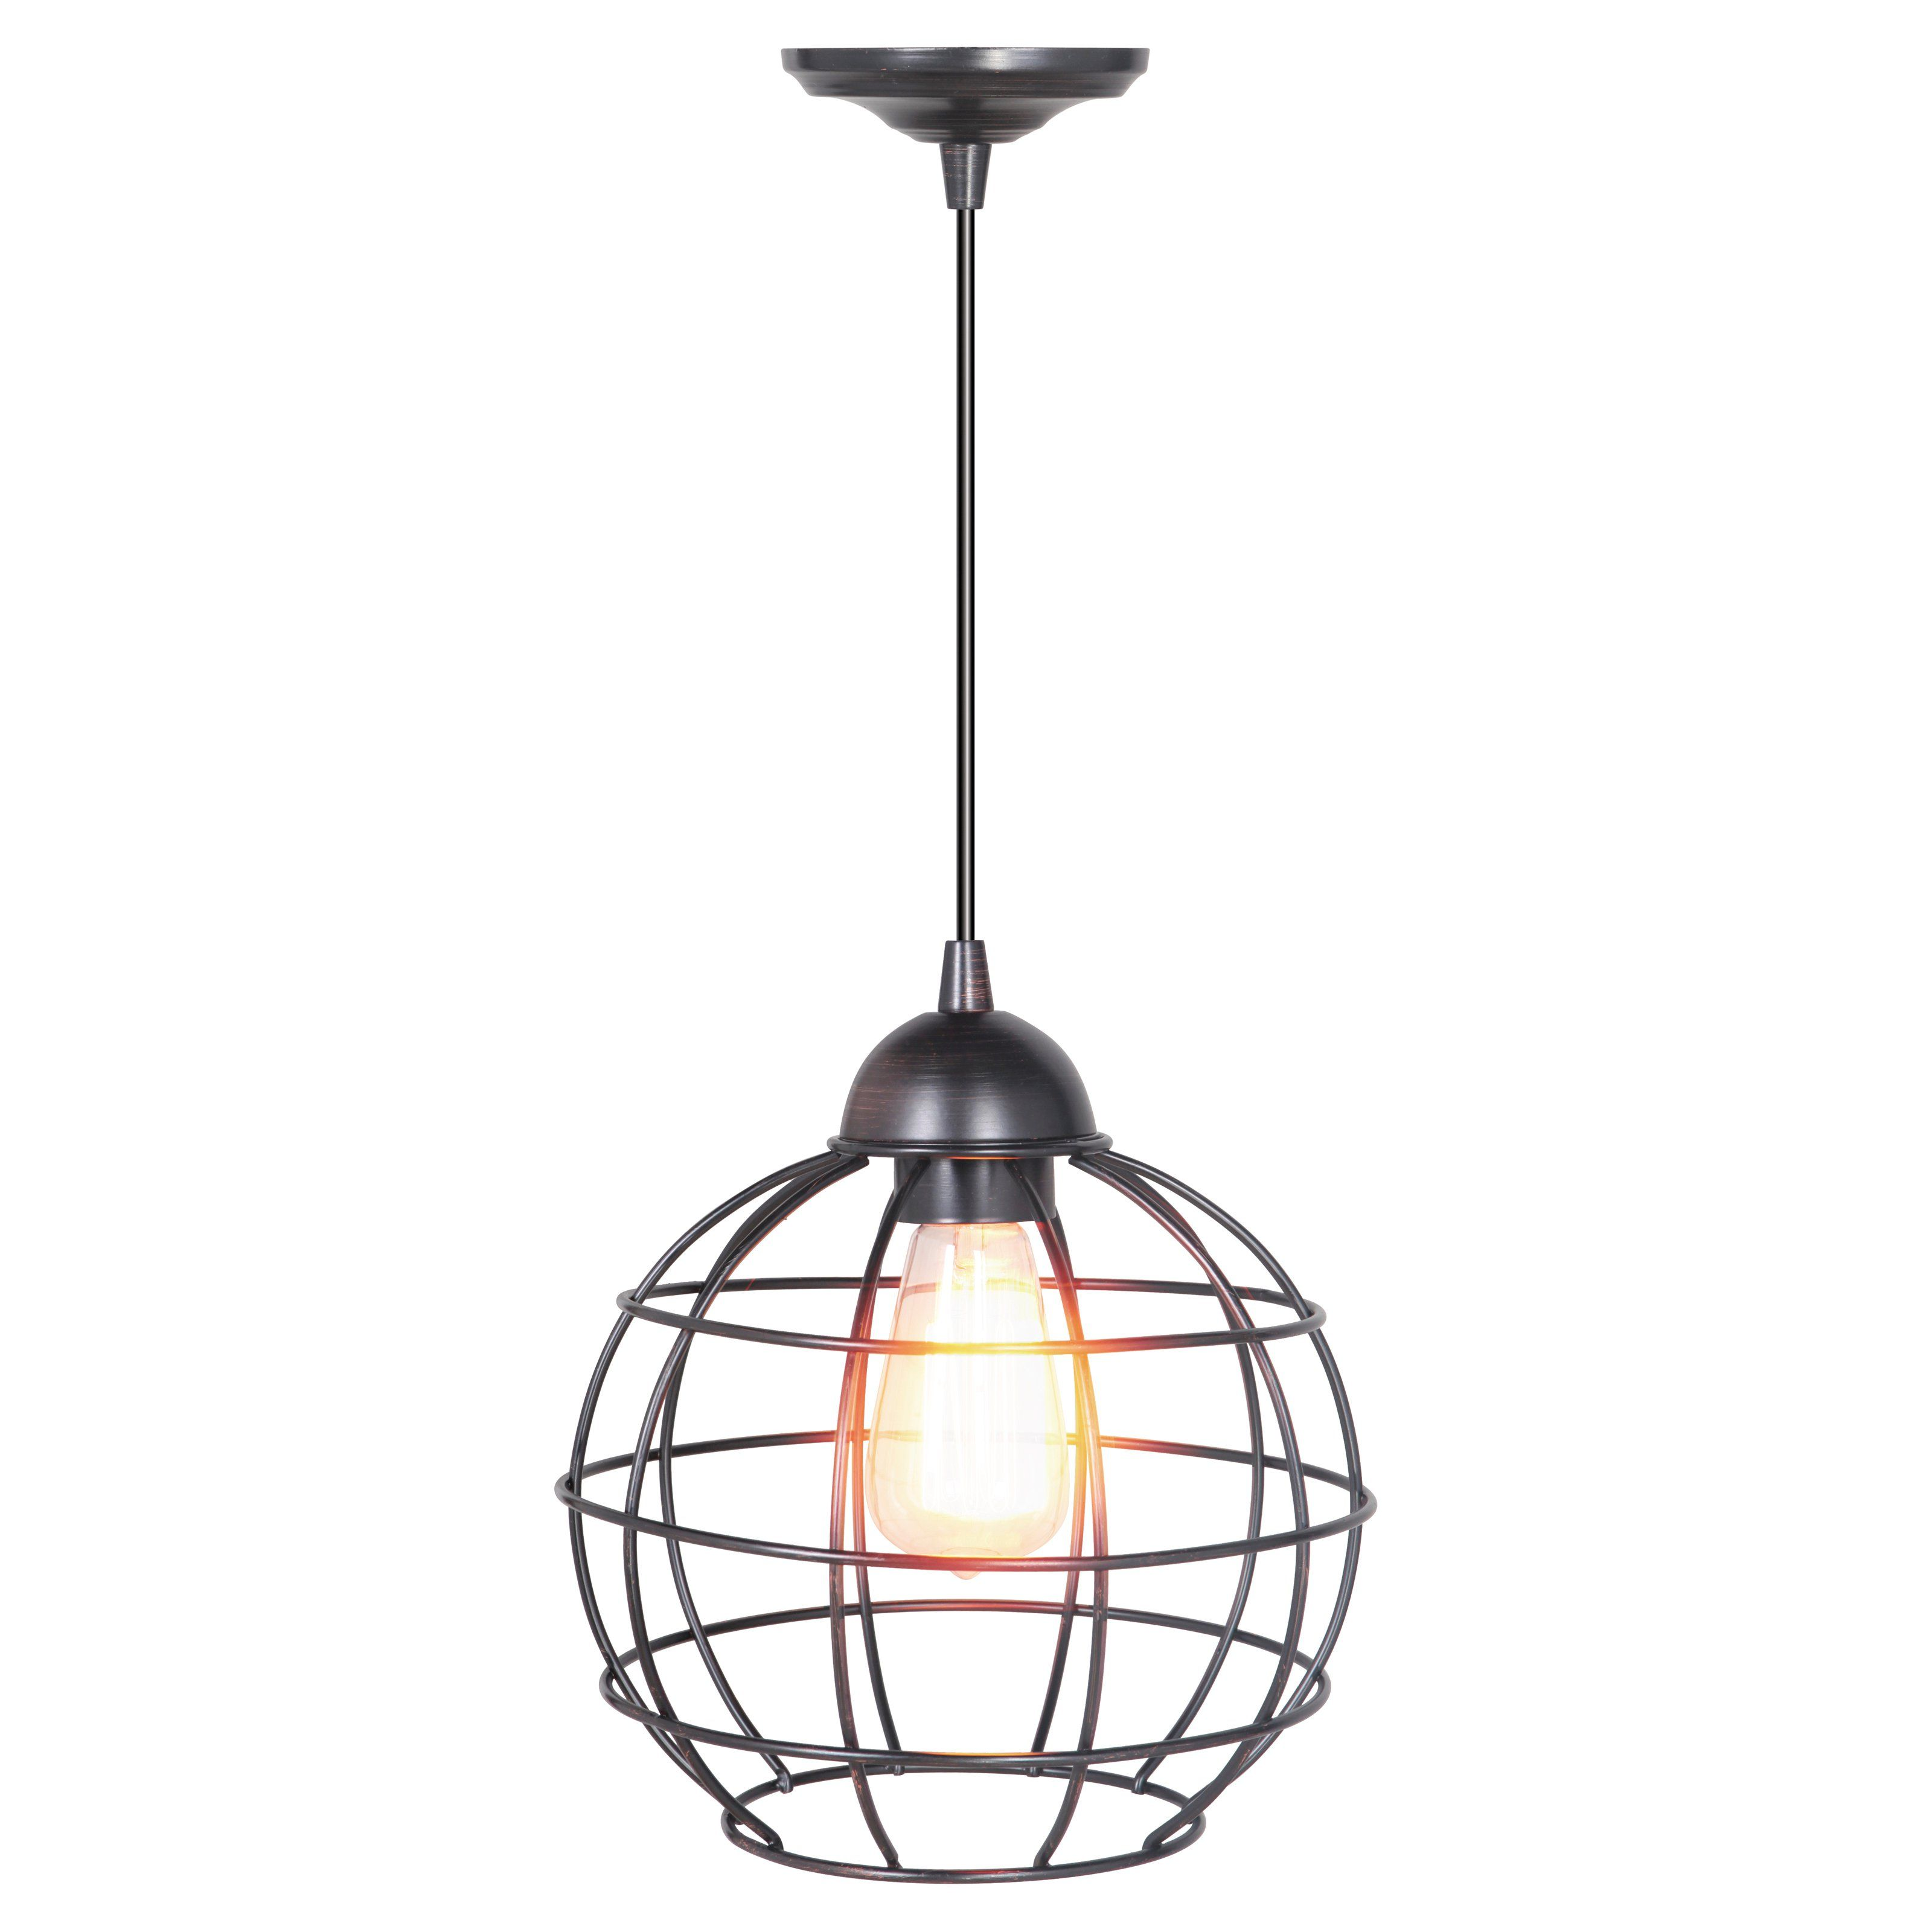 Worth home products pkw pendant light pkw products